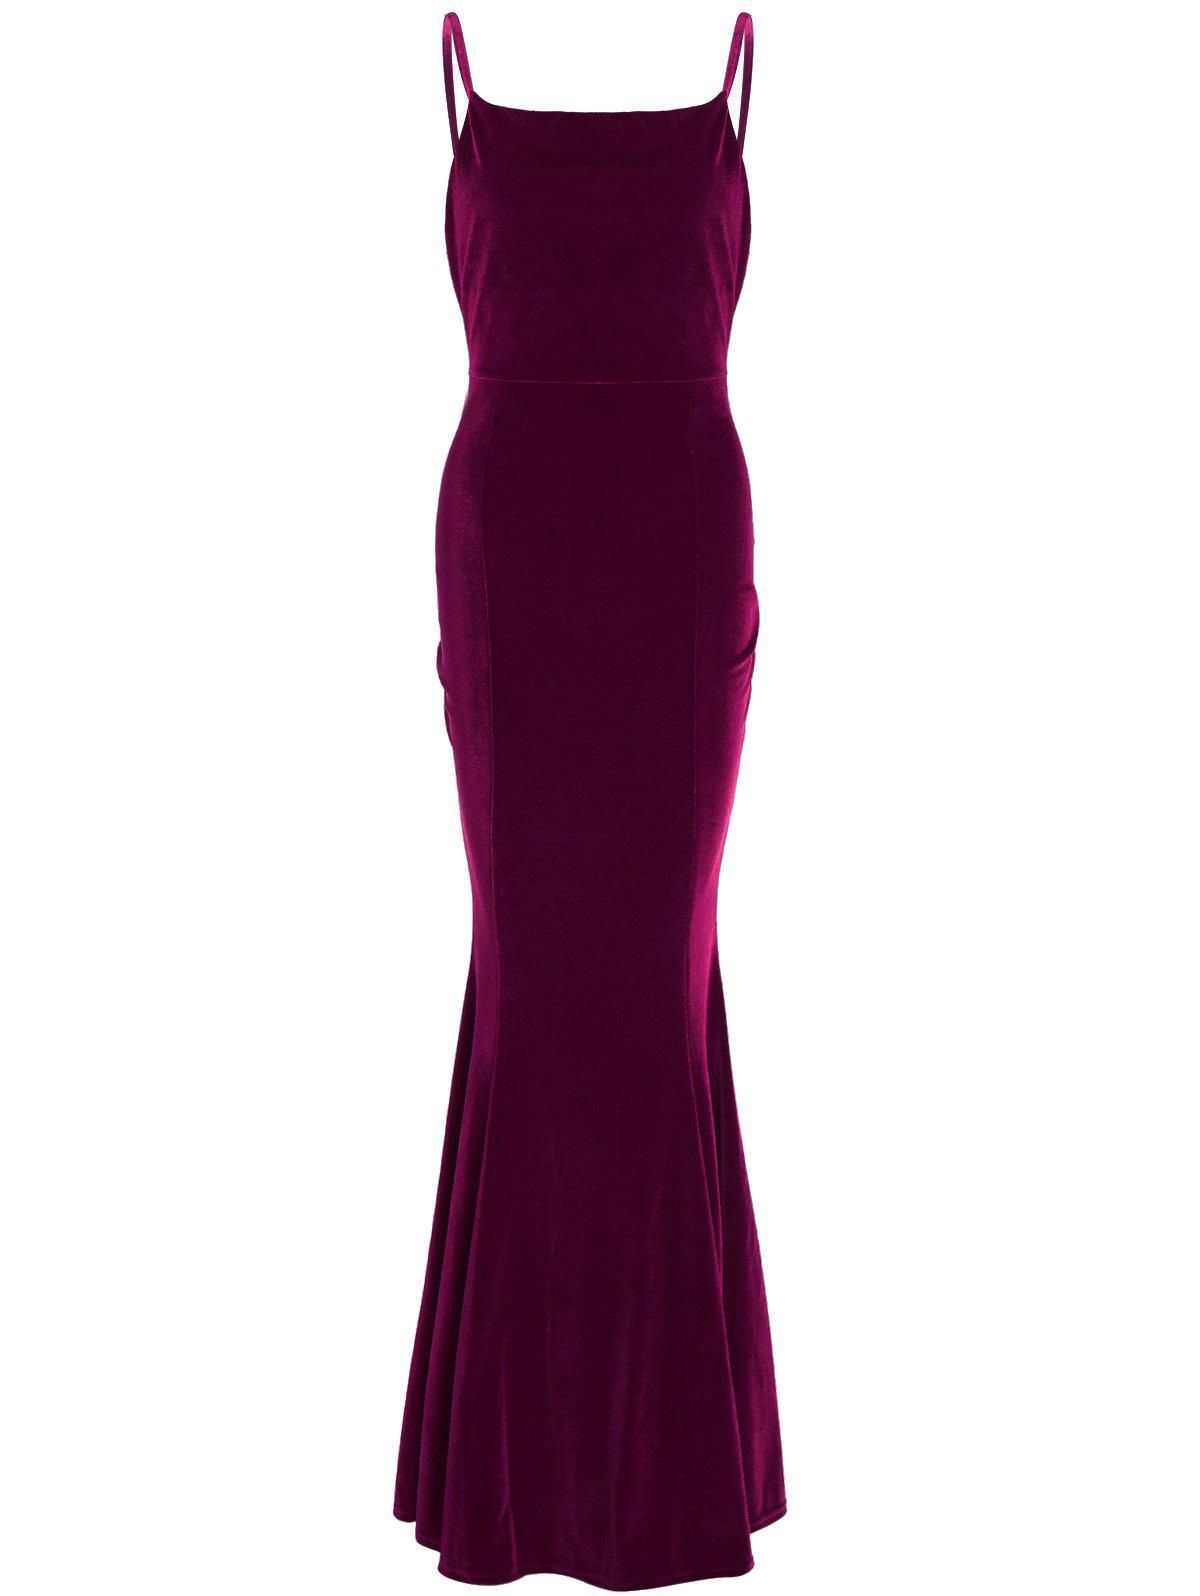 Buy Velvet Maxi Party Formal Slip Tight Mermaid Prom Dress